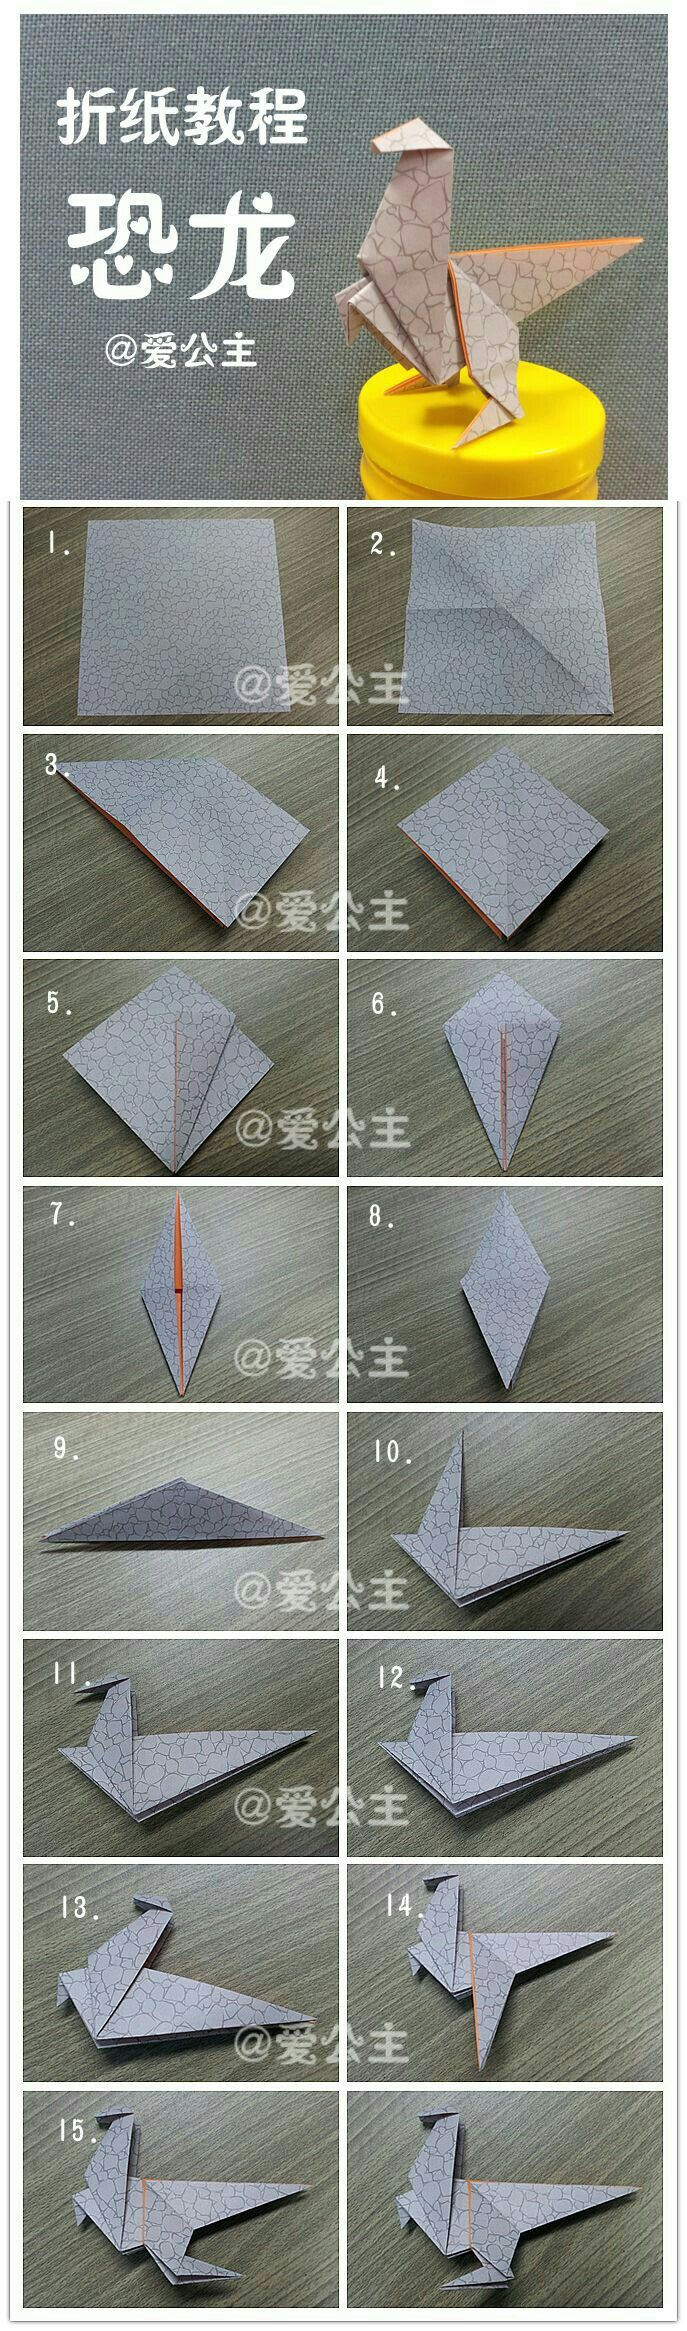 15 Best Art Plastique Images By Cyrielle Guillot On Pinterest 3d Origami Swan Diagram Http Howtoorigamicom Origamiswanhtml Raptor